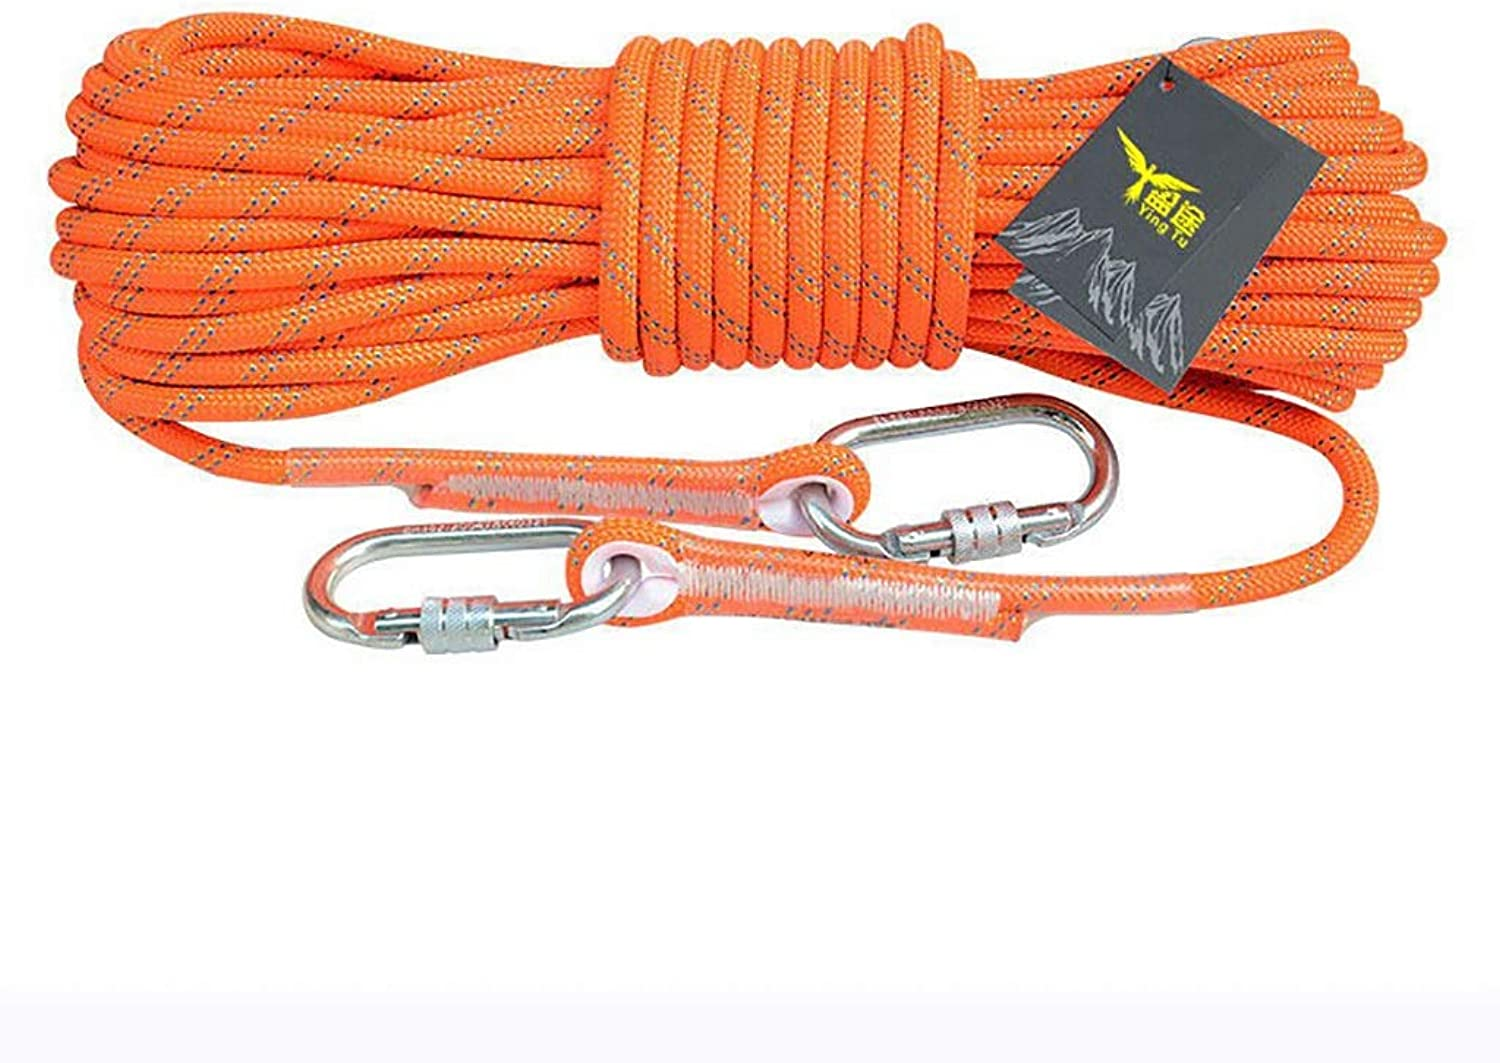 Climbing Rope Outdoor Safety Rope Climbing Rope Lifeline WearResistant Nylon Escape Rope 8mm (0.31 )   10.5mm (0.41 )   12mm (0.47 )